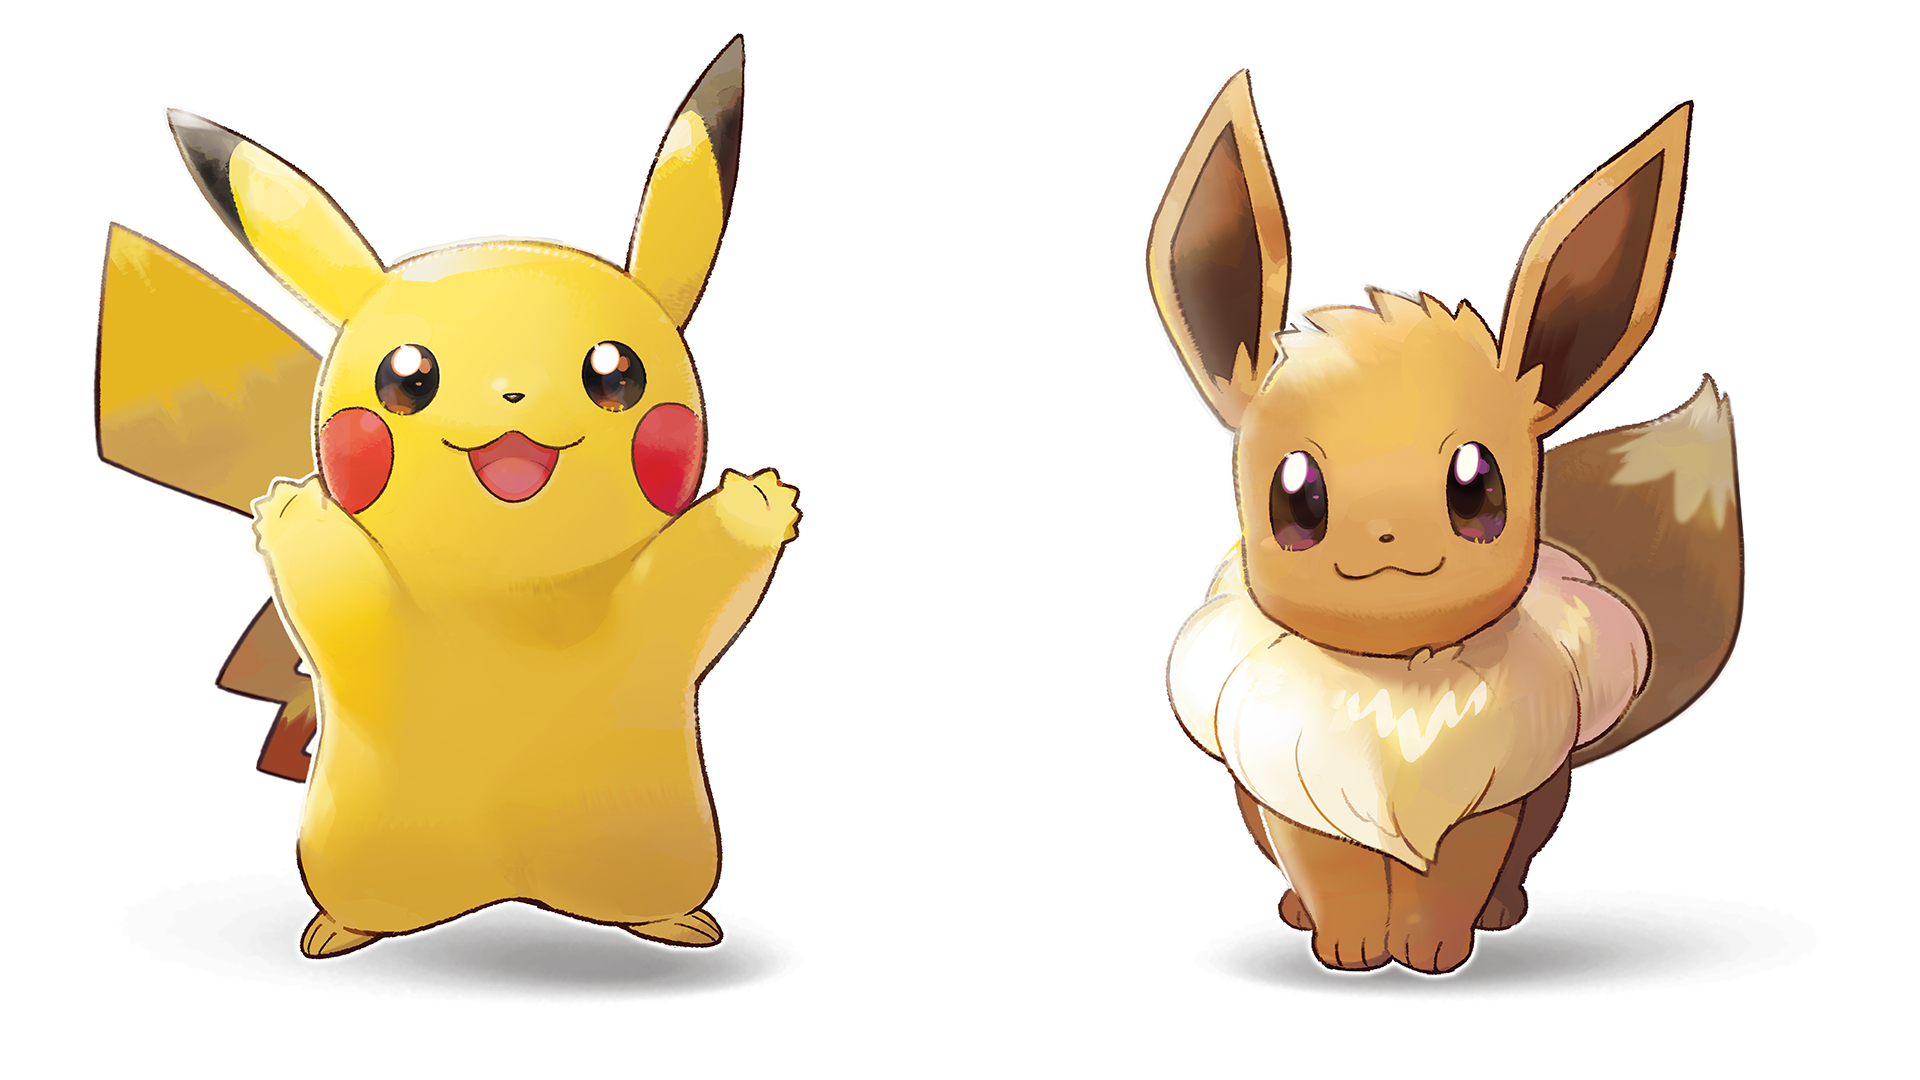 Pokémon: Let\'s Go Pikachu and Let\'s Go Eevee HD Wallpaper.